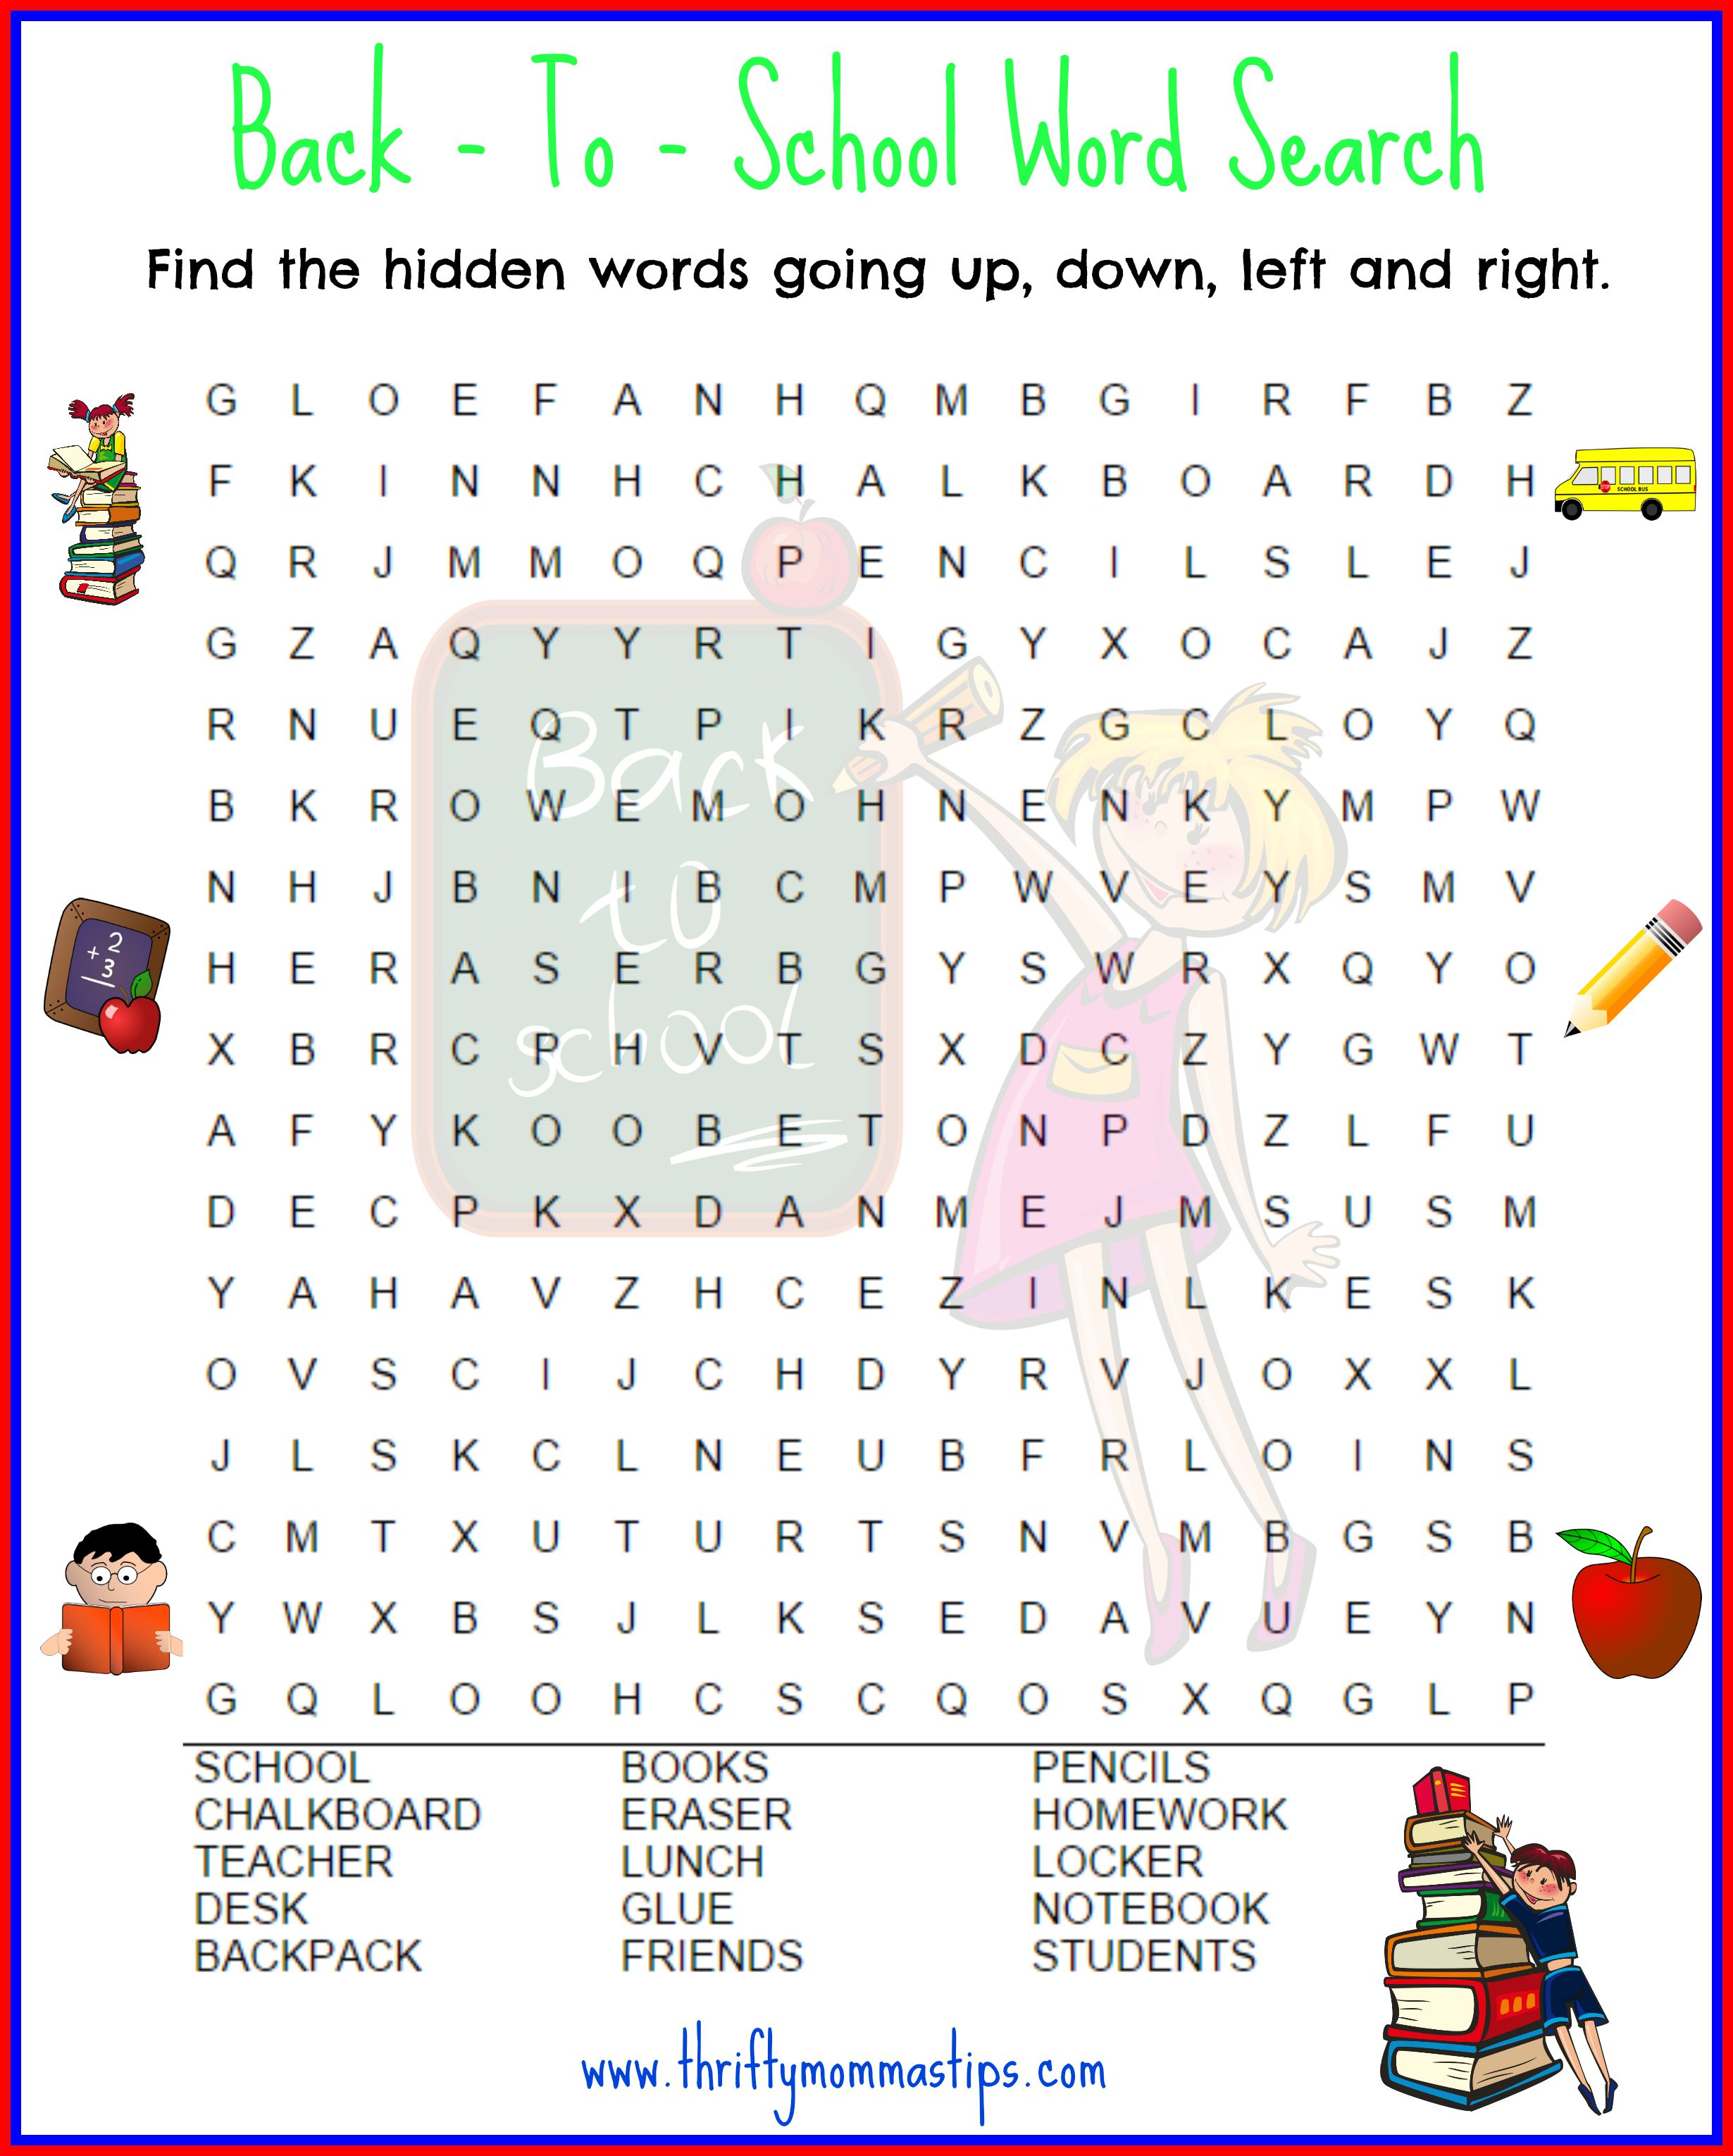 Back to School Word Search #BTS